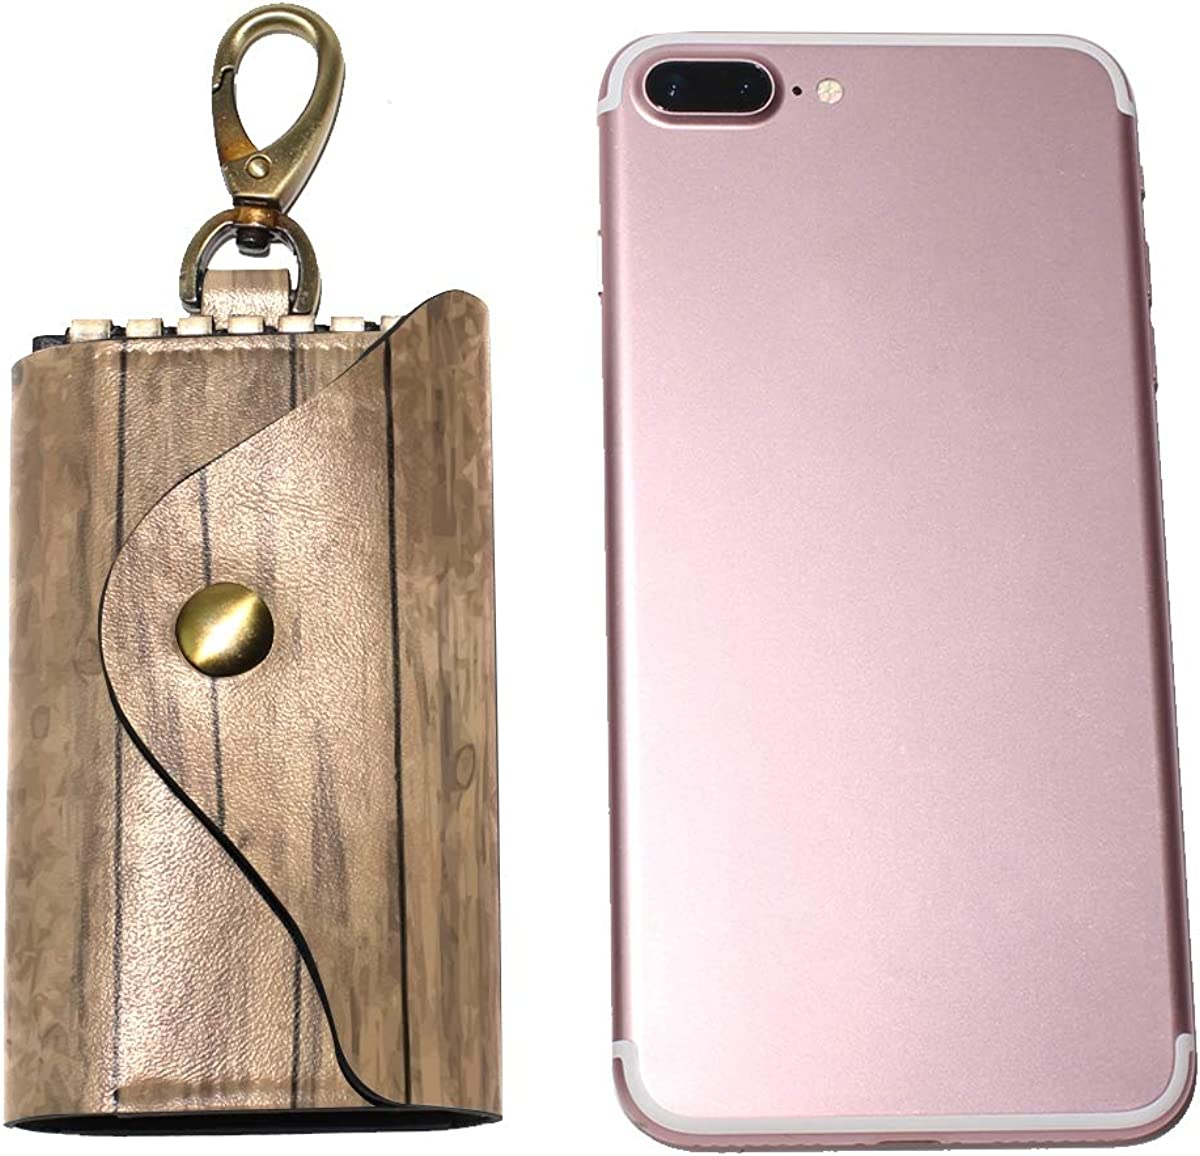 KEAKIA Old Wooden Floor Leather Key Case Wallets Tri-fold Key Holder Keychains with 6 Hooks 2 Slot Snap Closure for Men Women